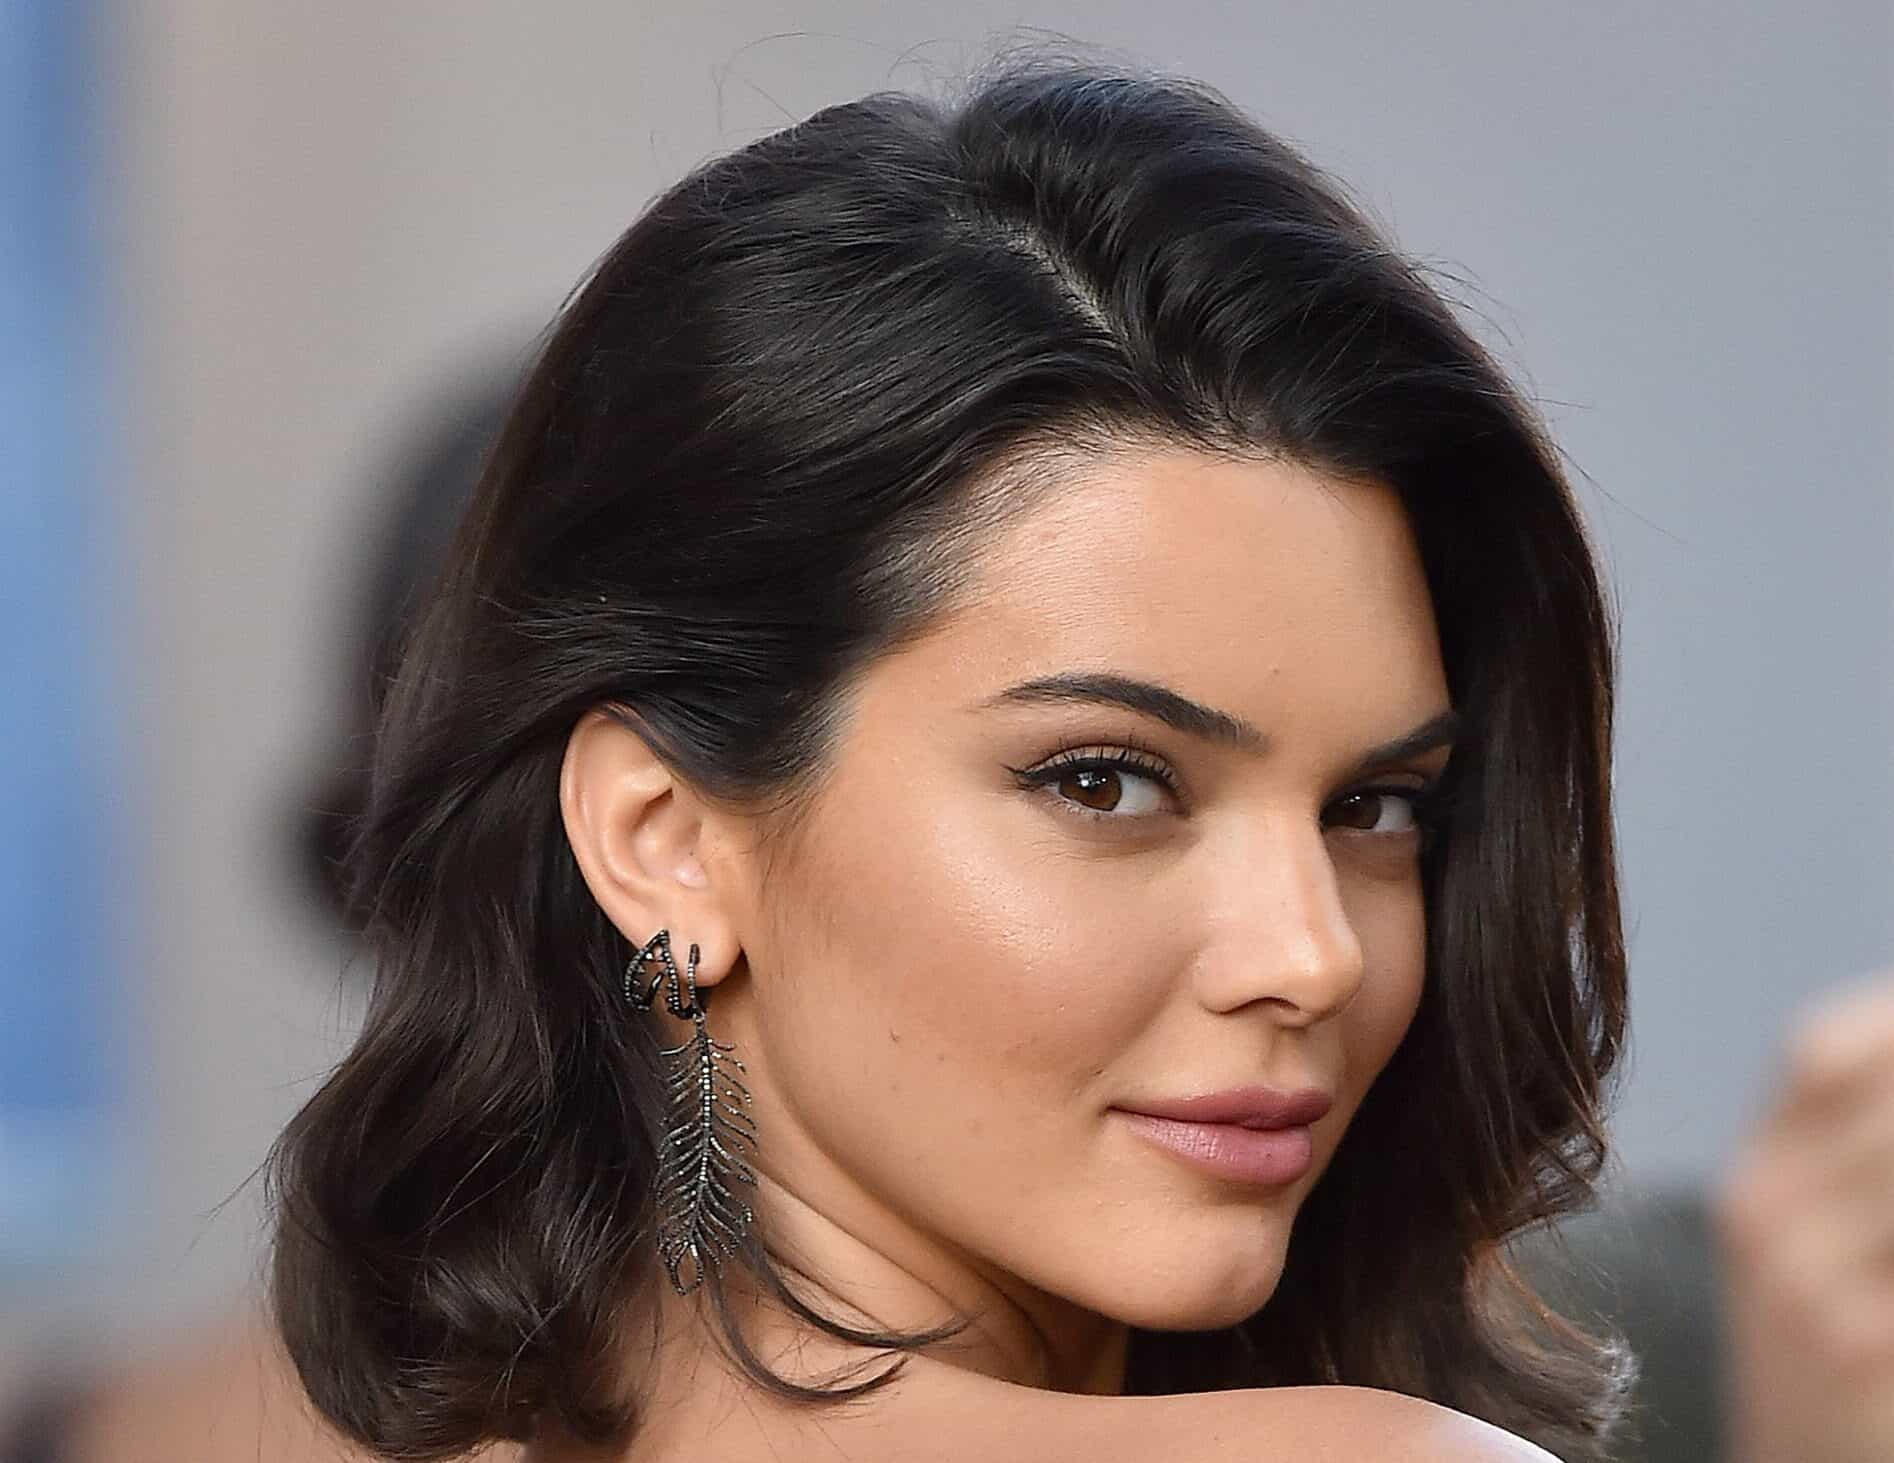 Latest Rumours About Kendall Jenner